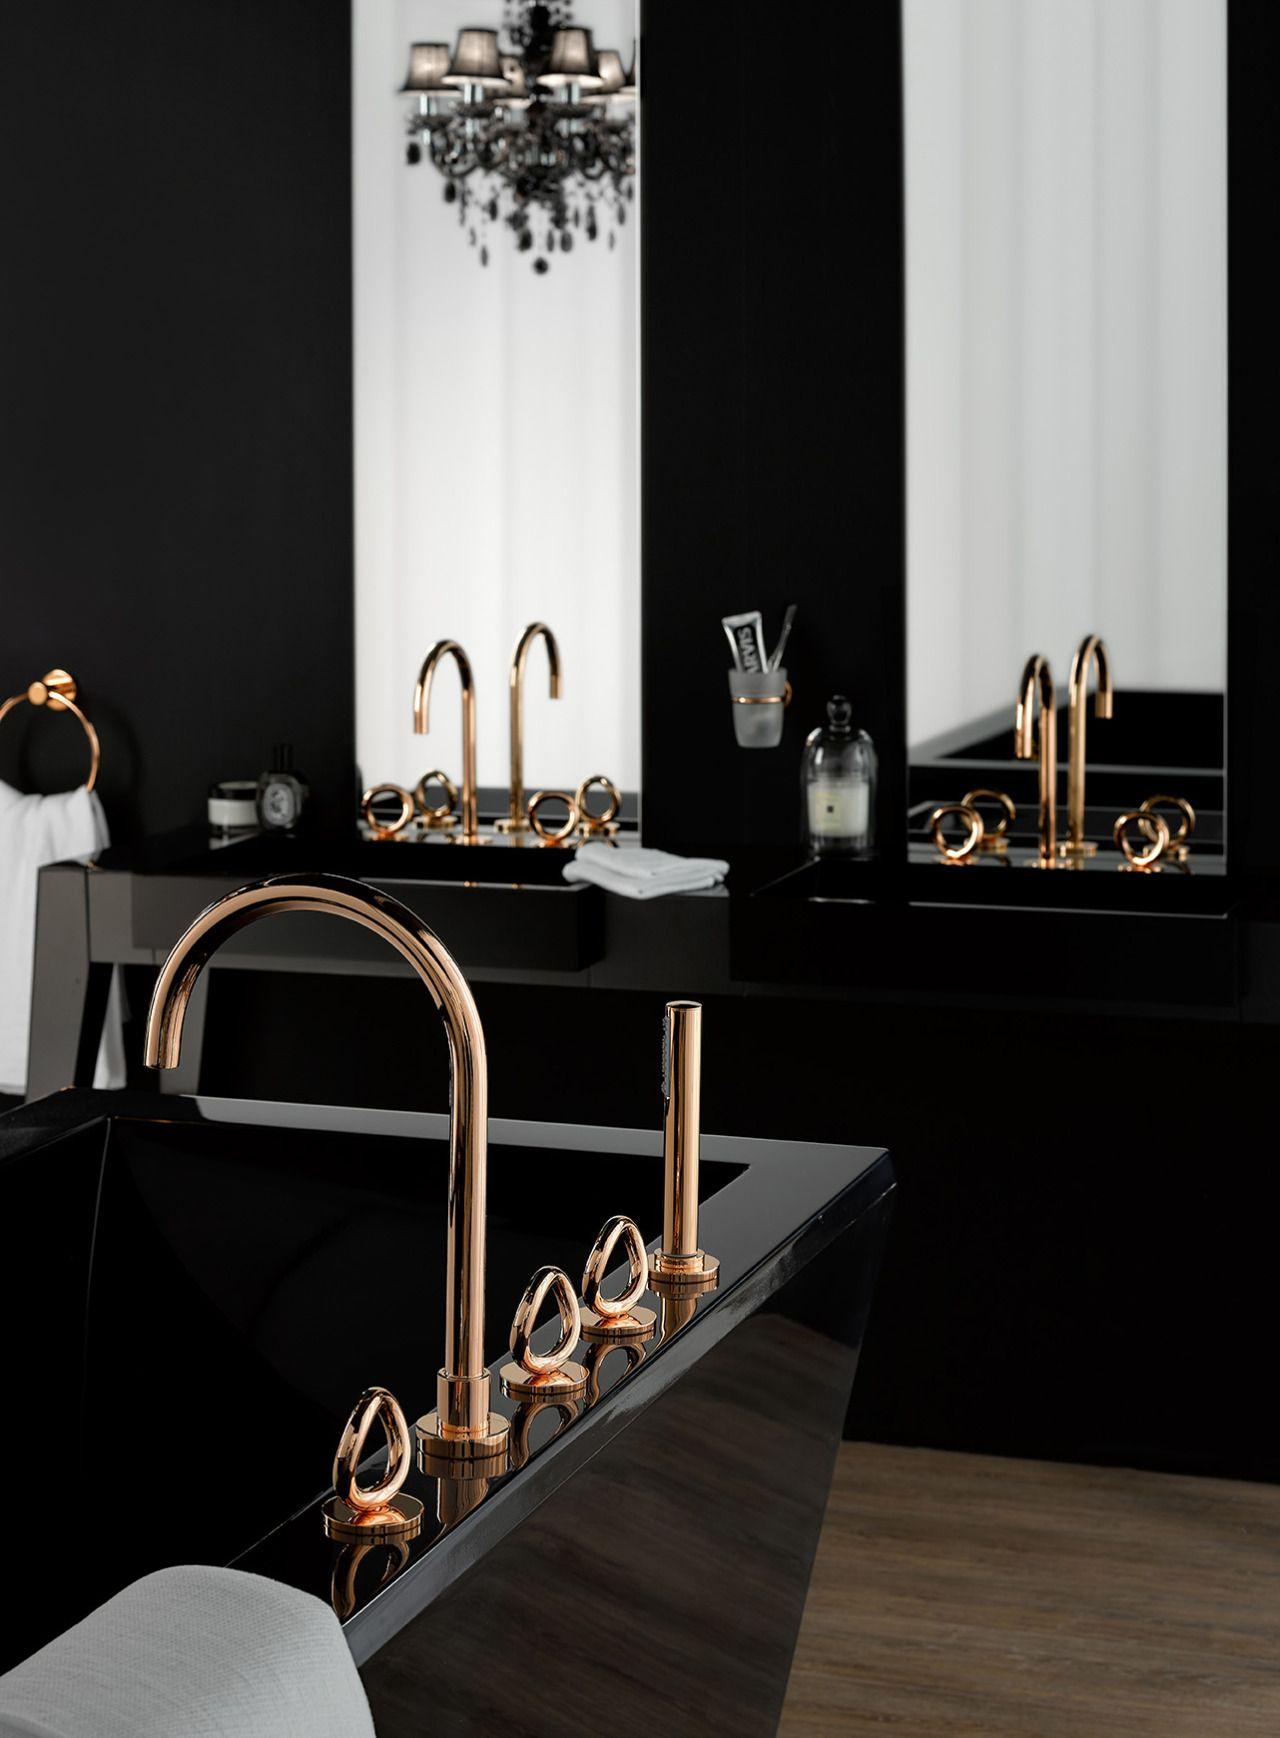 Styleture Collection O By Thg Paris Bathroom Design Black Bathroom Interior Design Bathroom Design